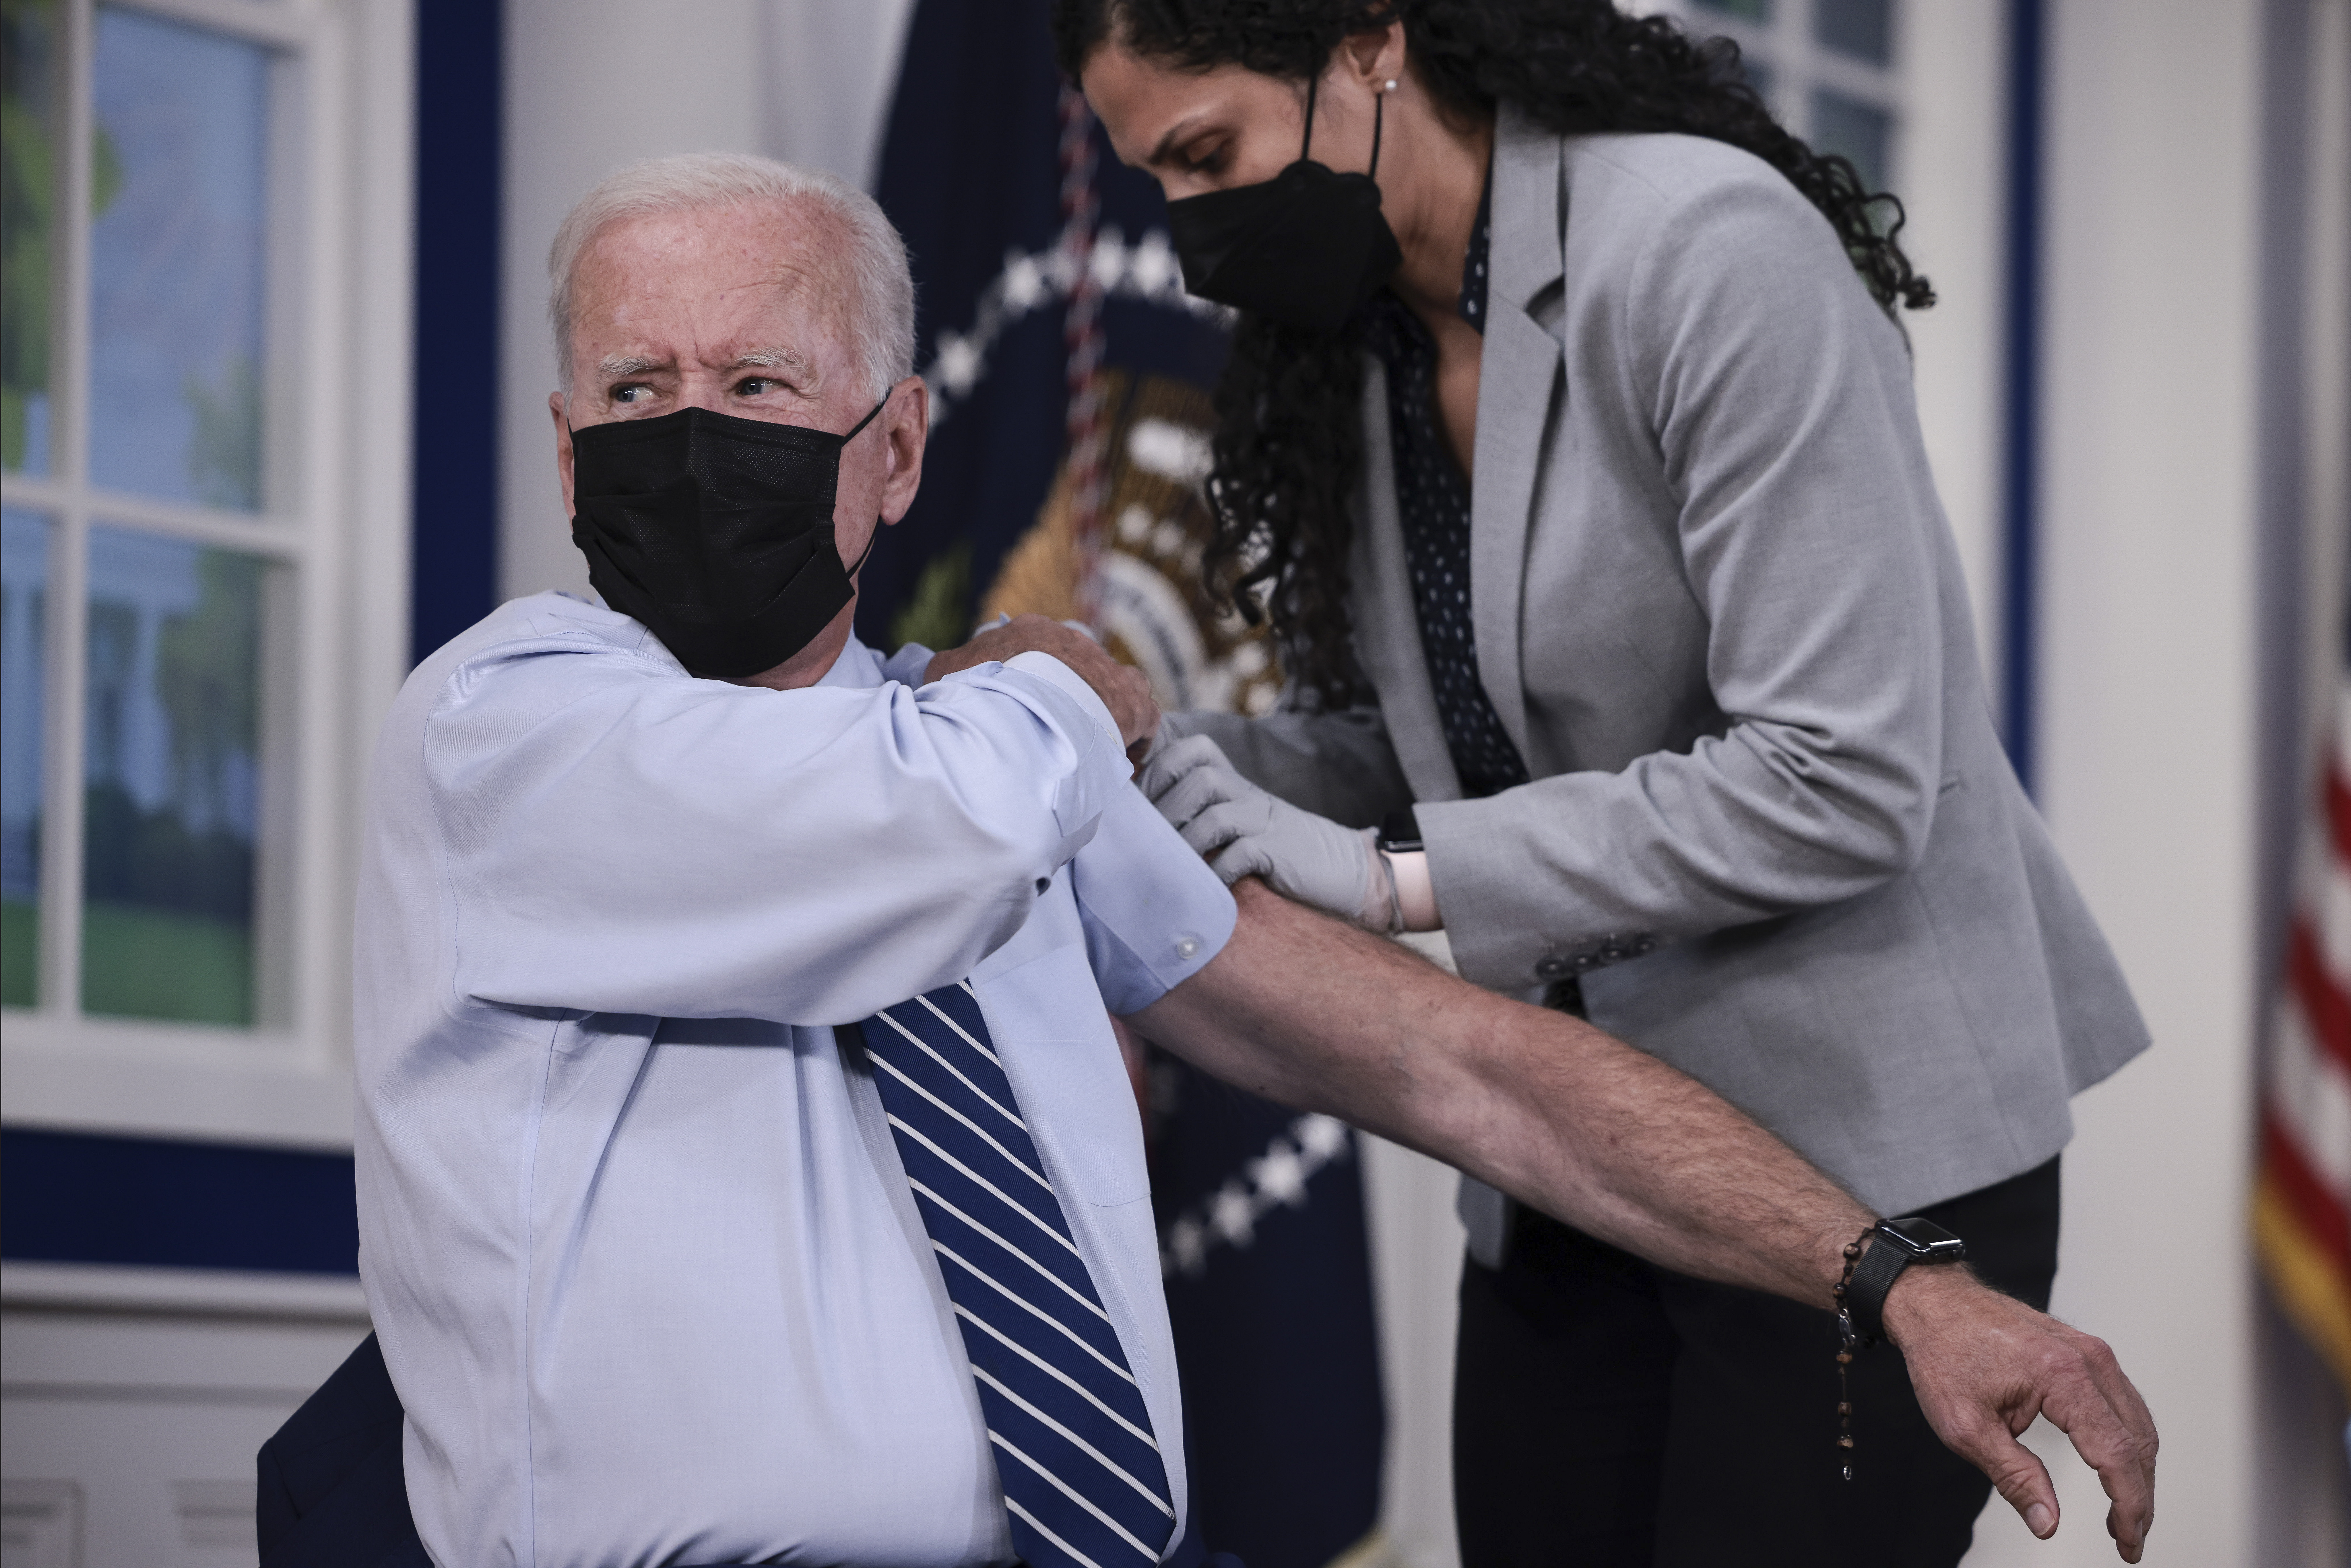 Joe Biden rolls up his sleeve before receiving a third dose of the Pfizer/BioNTech Covid-19 vaccine in the South Court Auditorium in the White House September 27, 2021 in Washington, DC. (Photo by Anna Moneymaker/Getty Images)